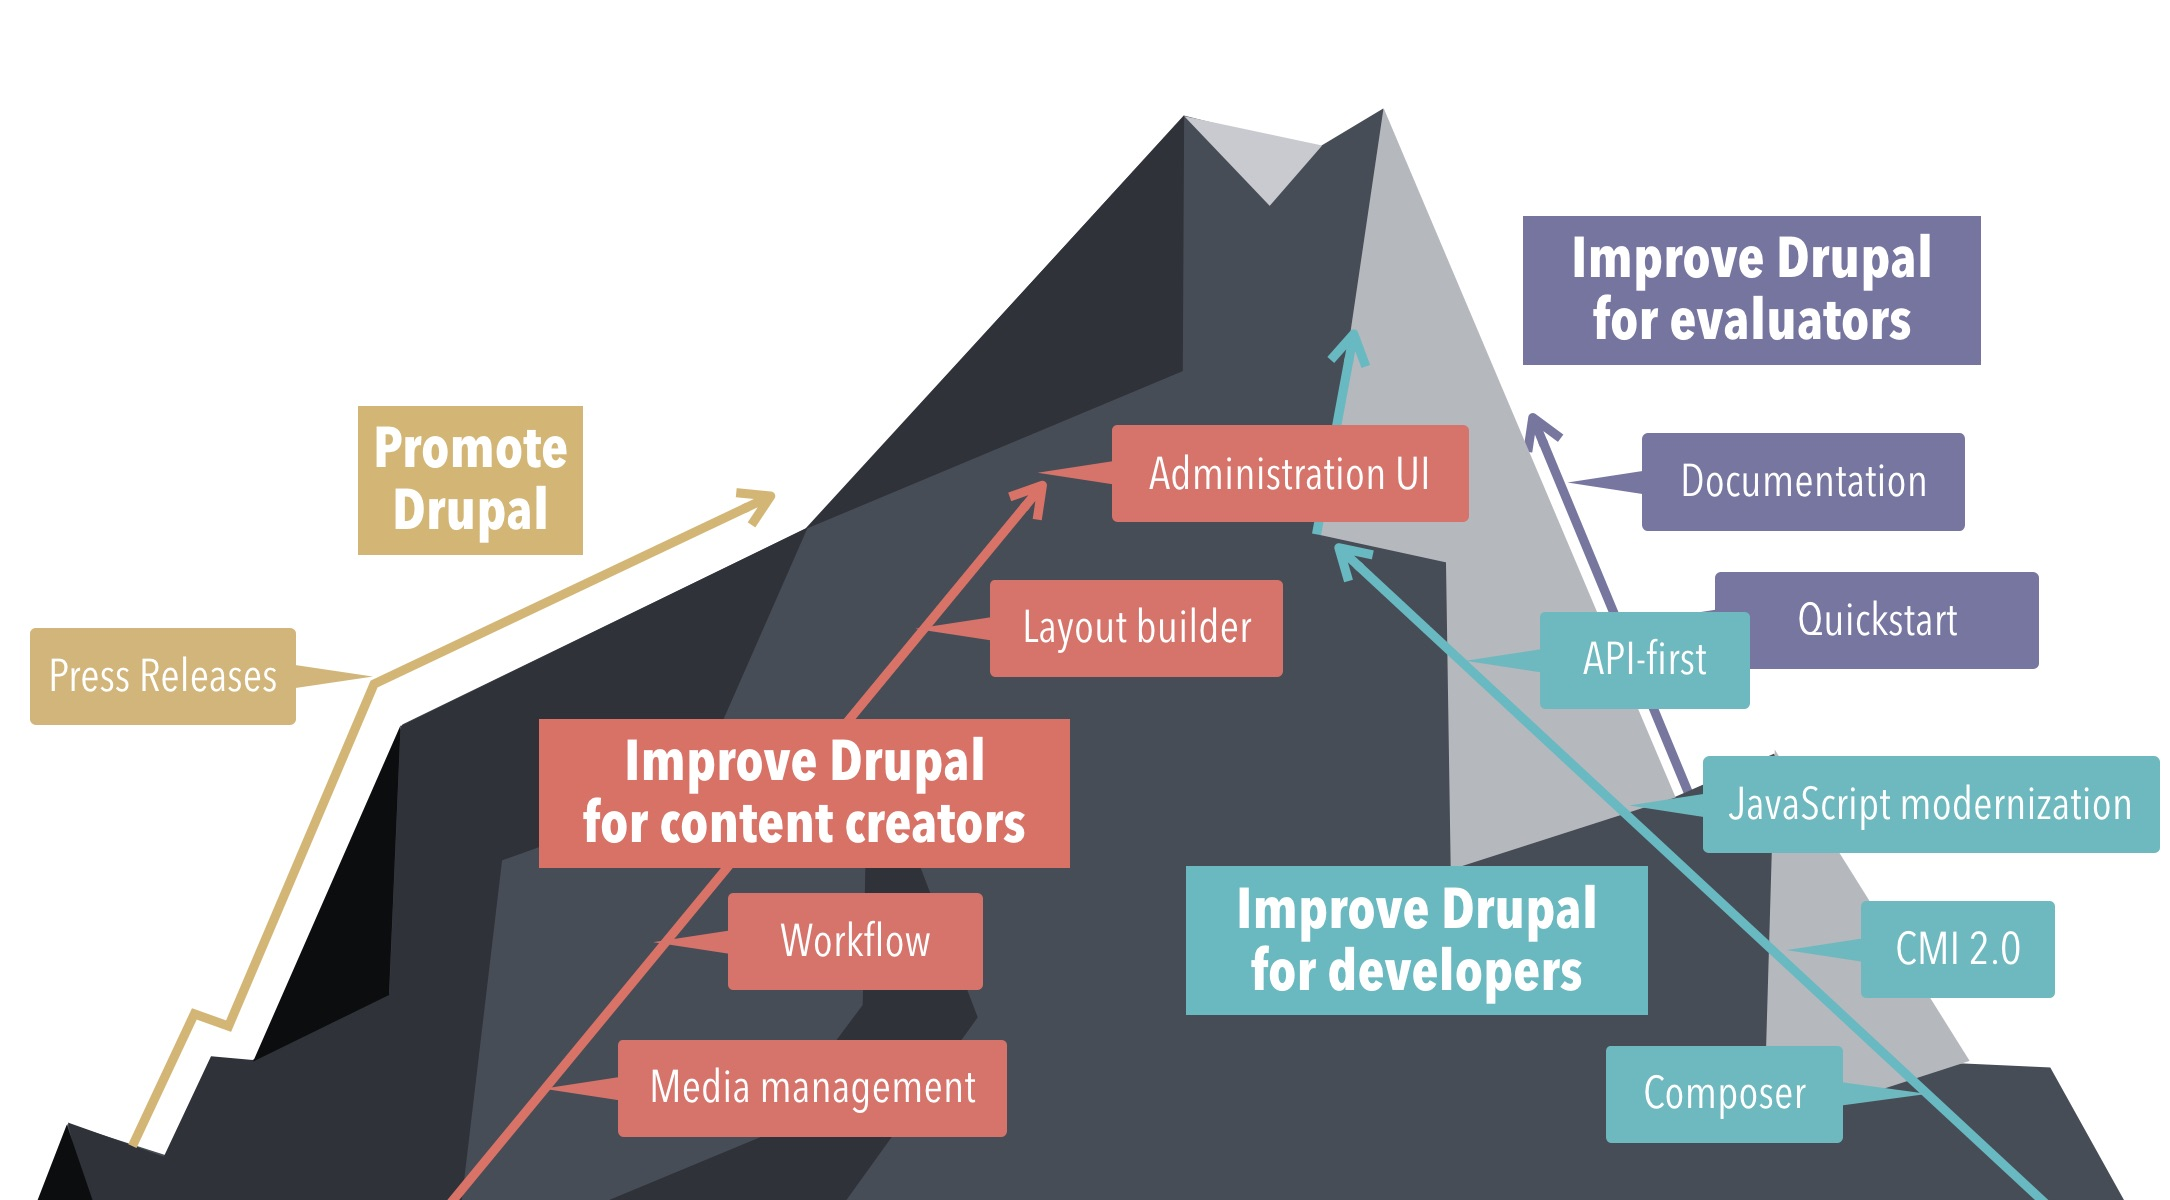 An overview of Drupal 8's strategic initaitives